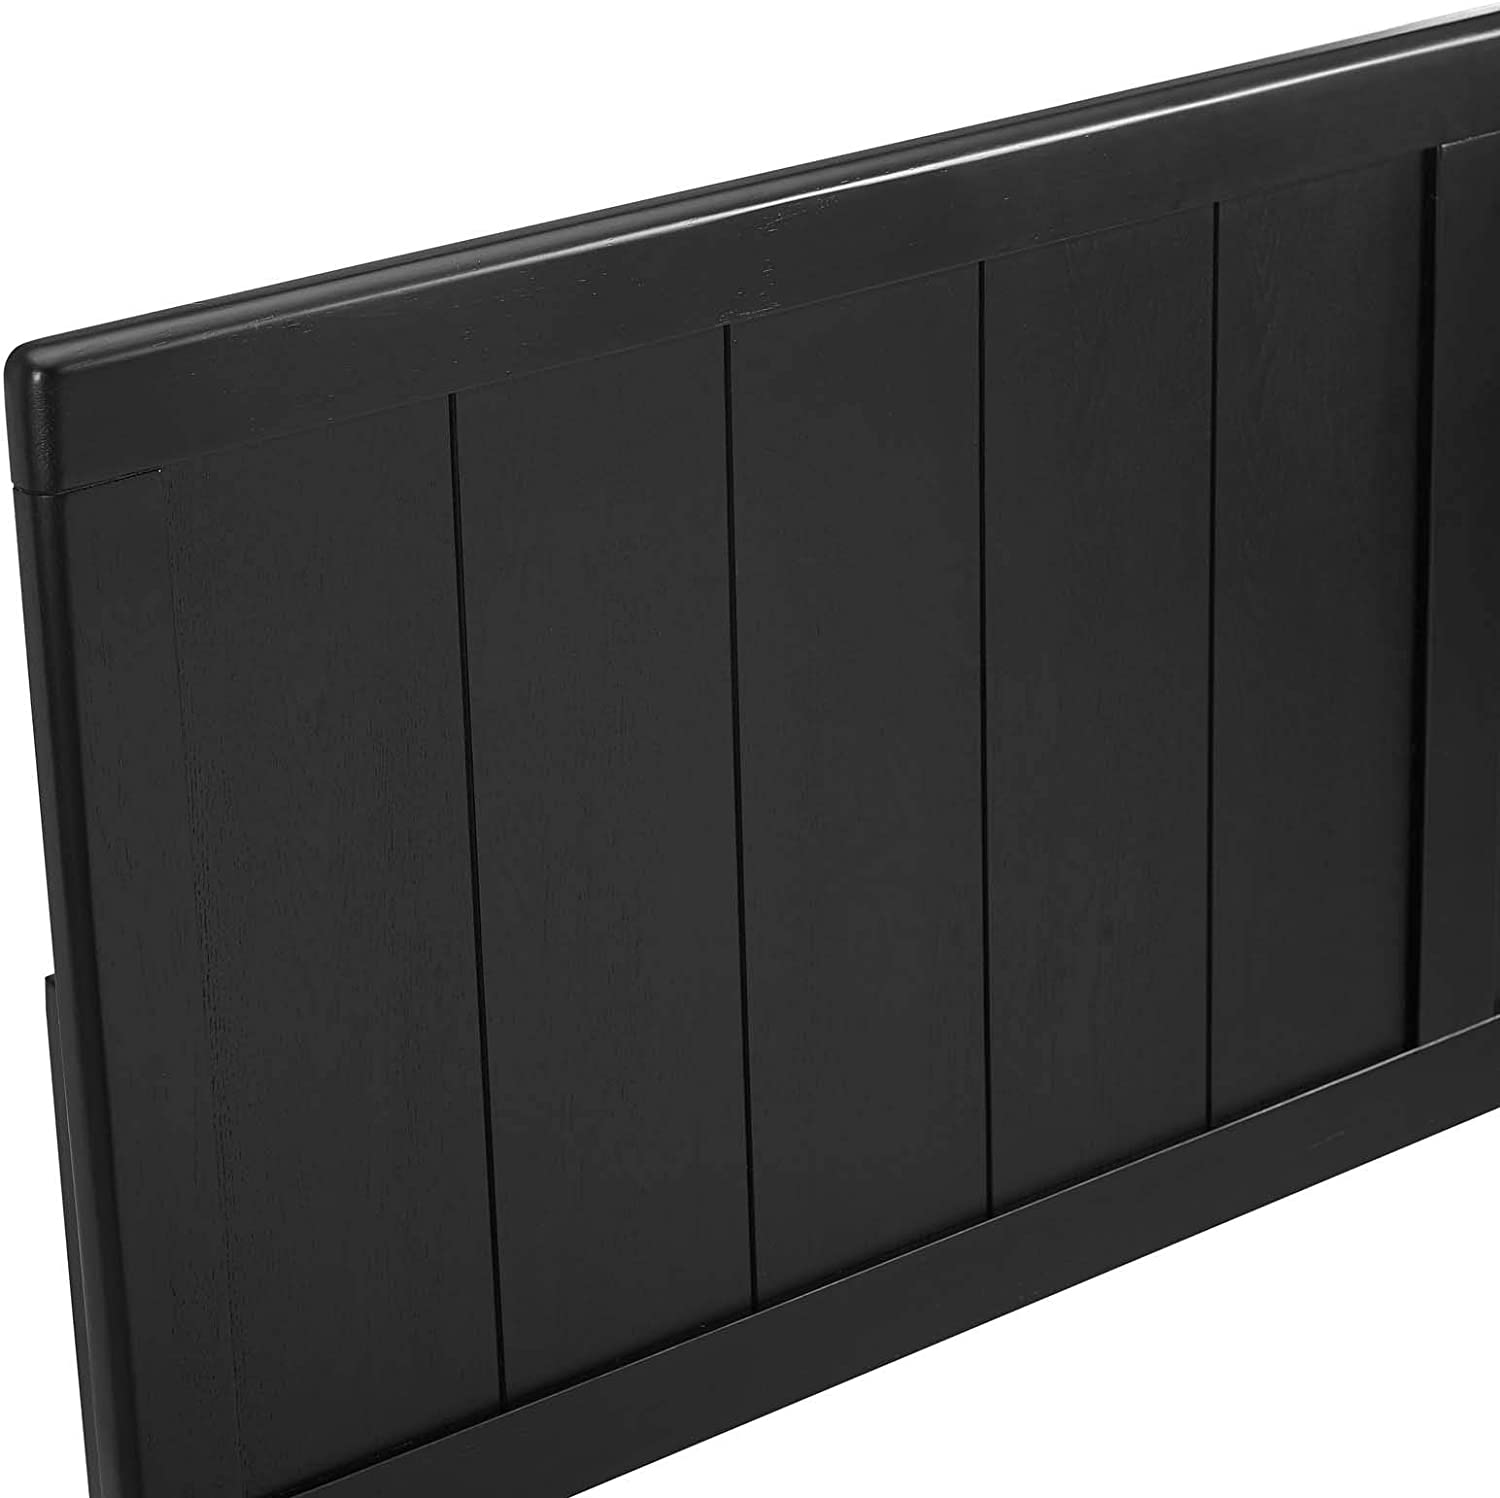 Modway Robbie Wood King Headboard in Black